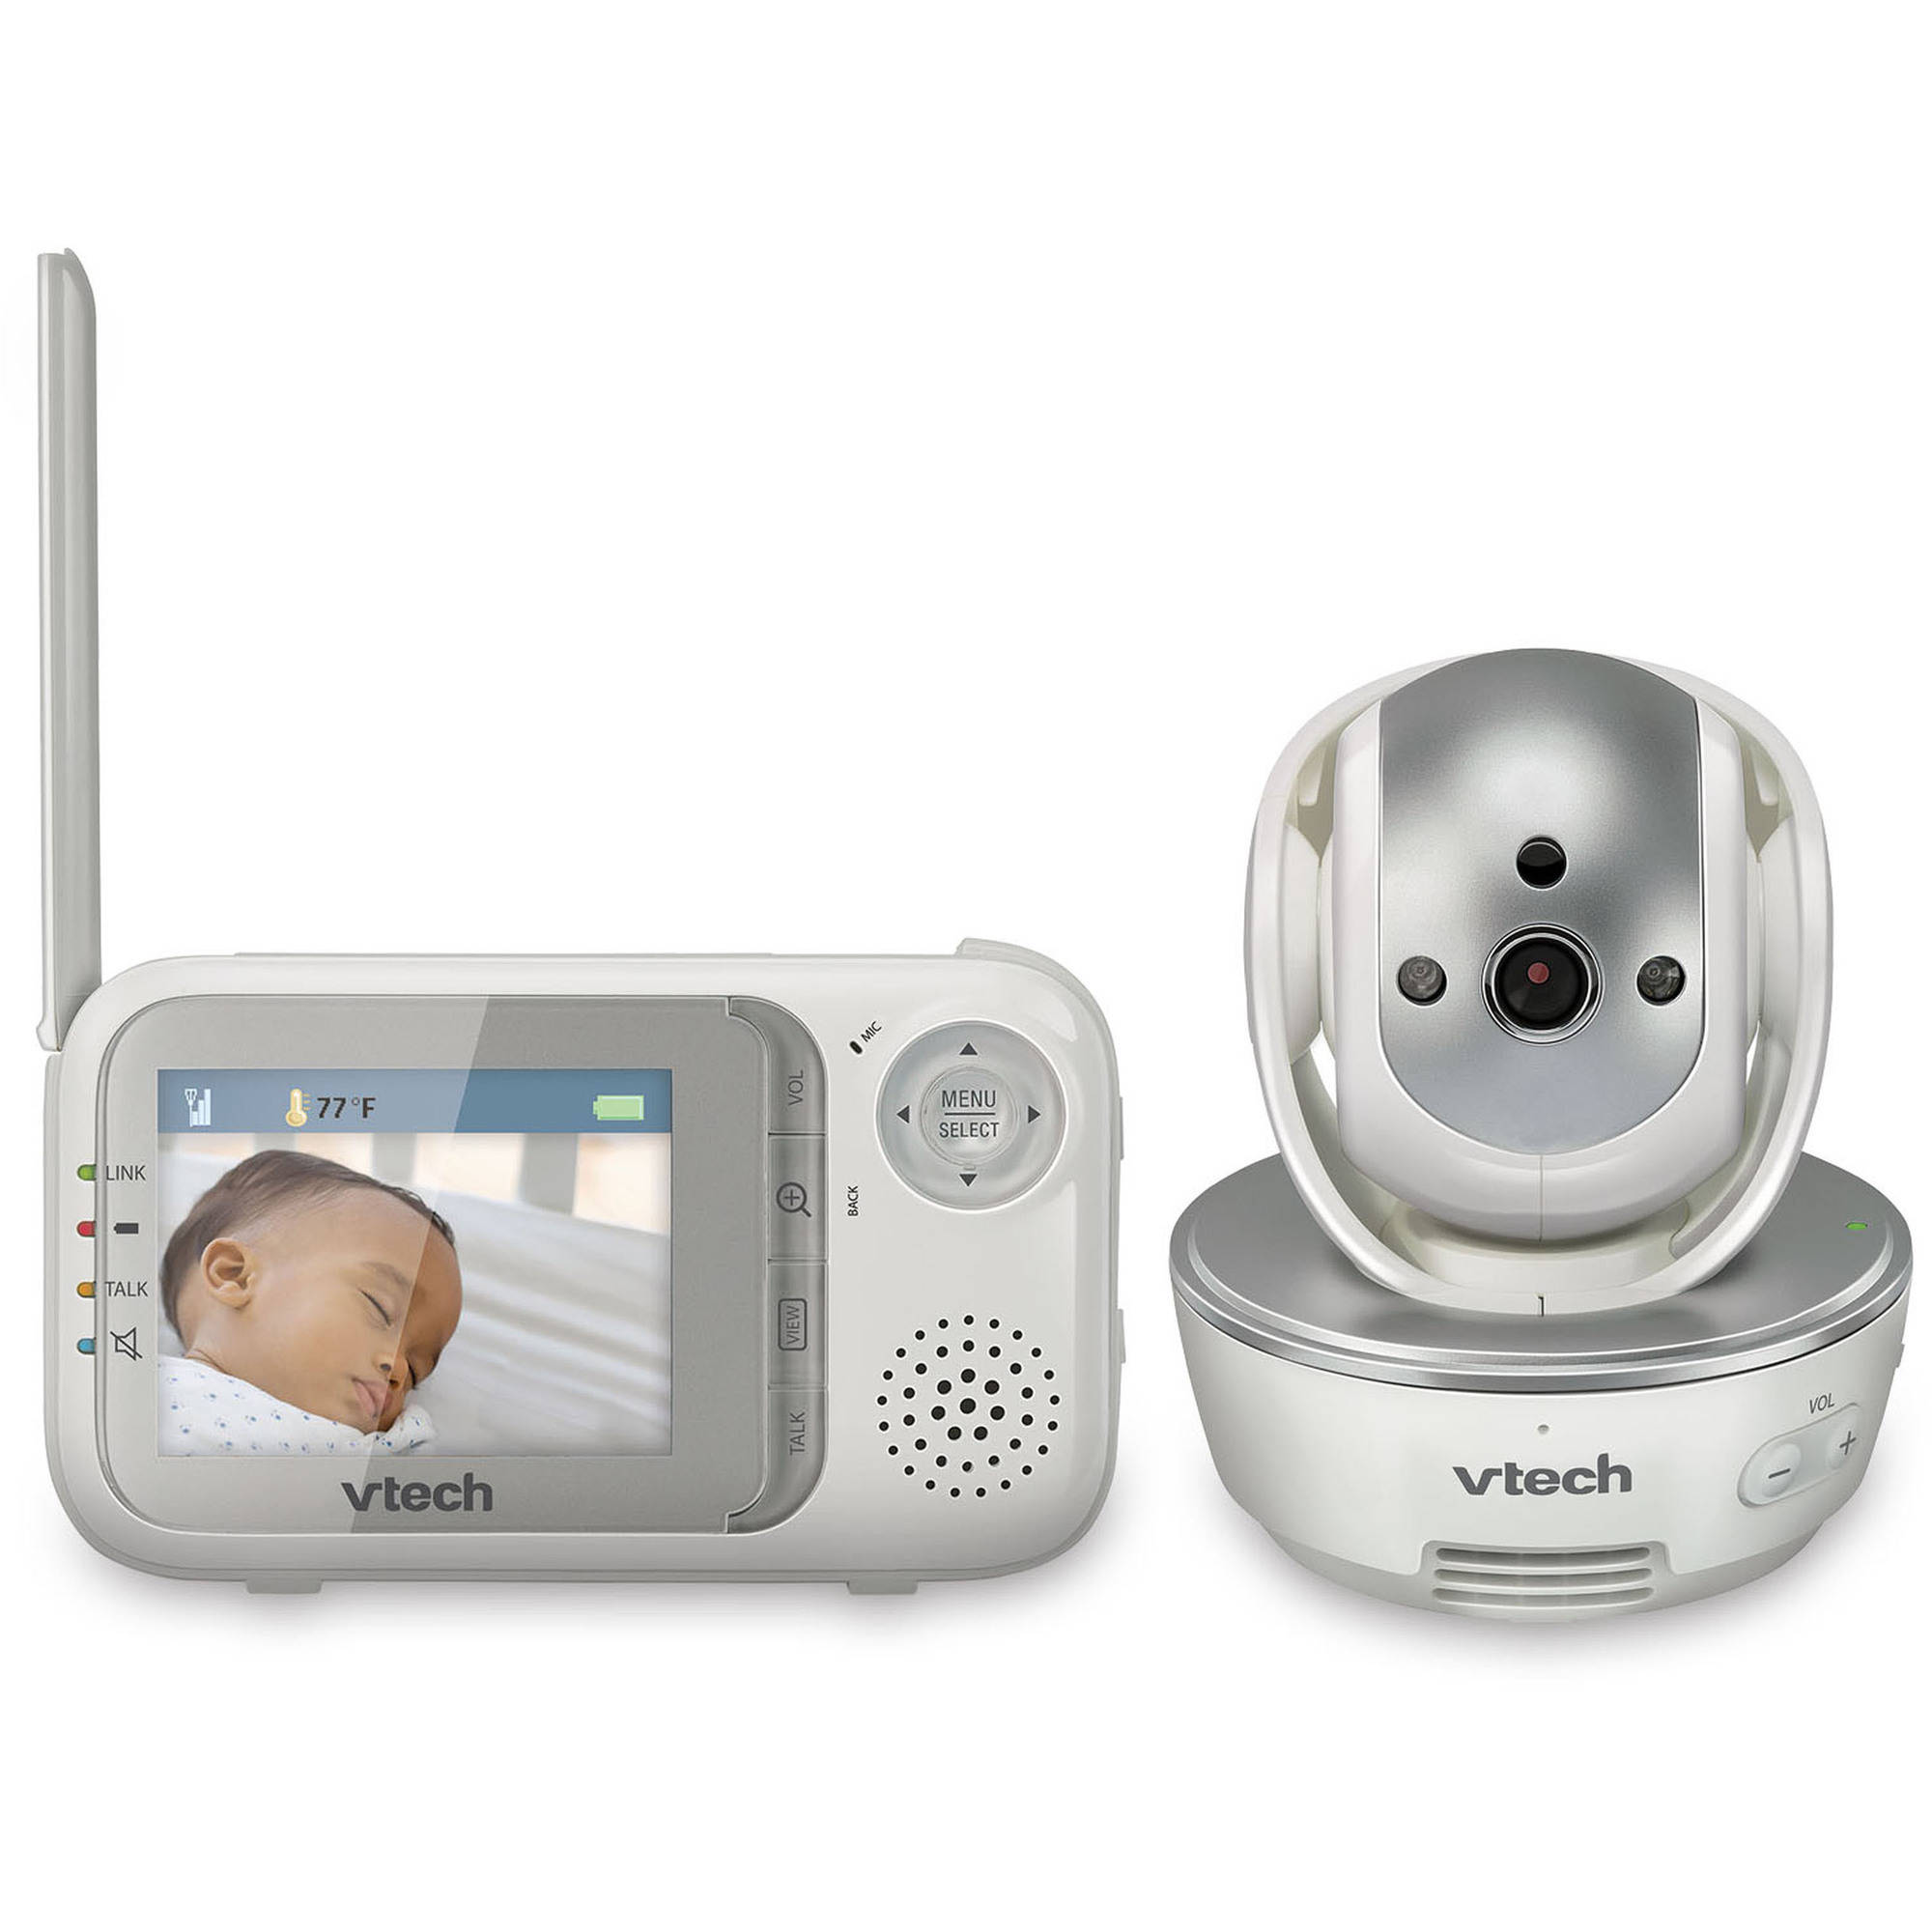 VTech VM333, Video Baby Monitor, Pan & Tilt Camera, Night Vision